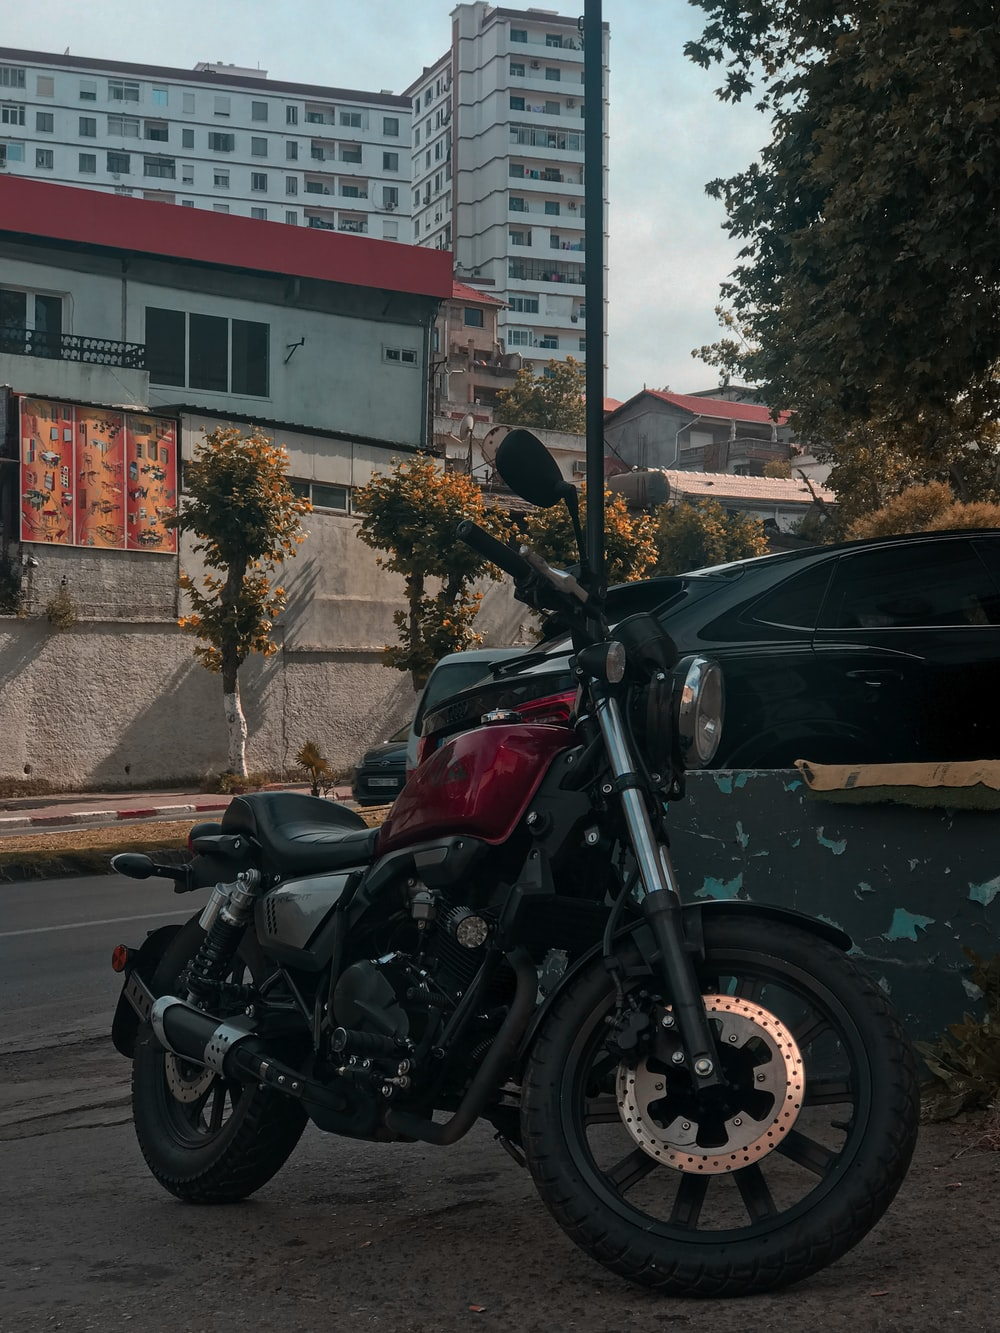 black and red motorcycle parked beside black suv during daytime